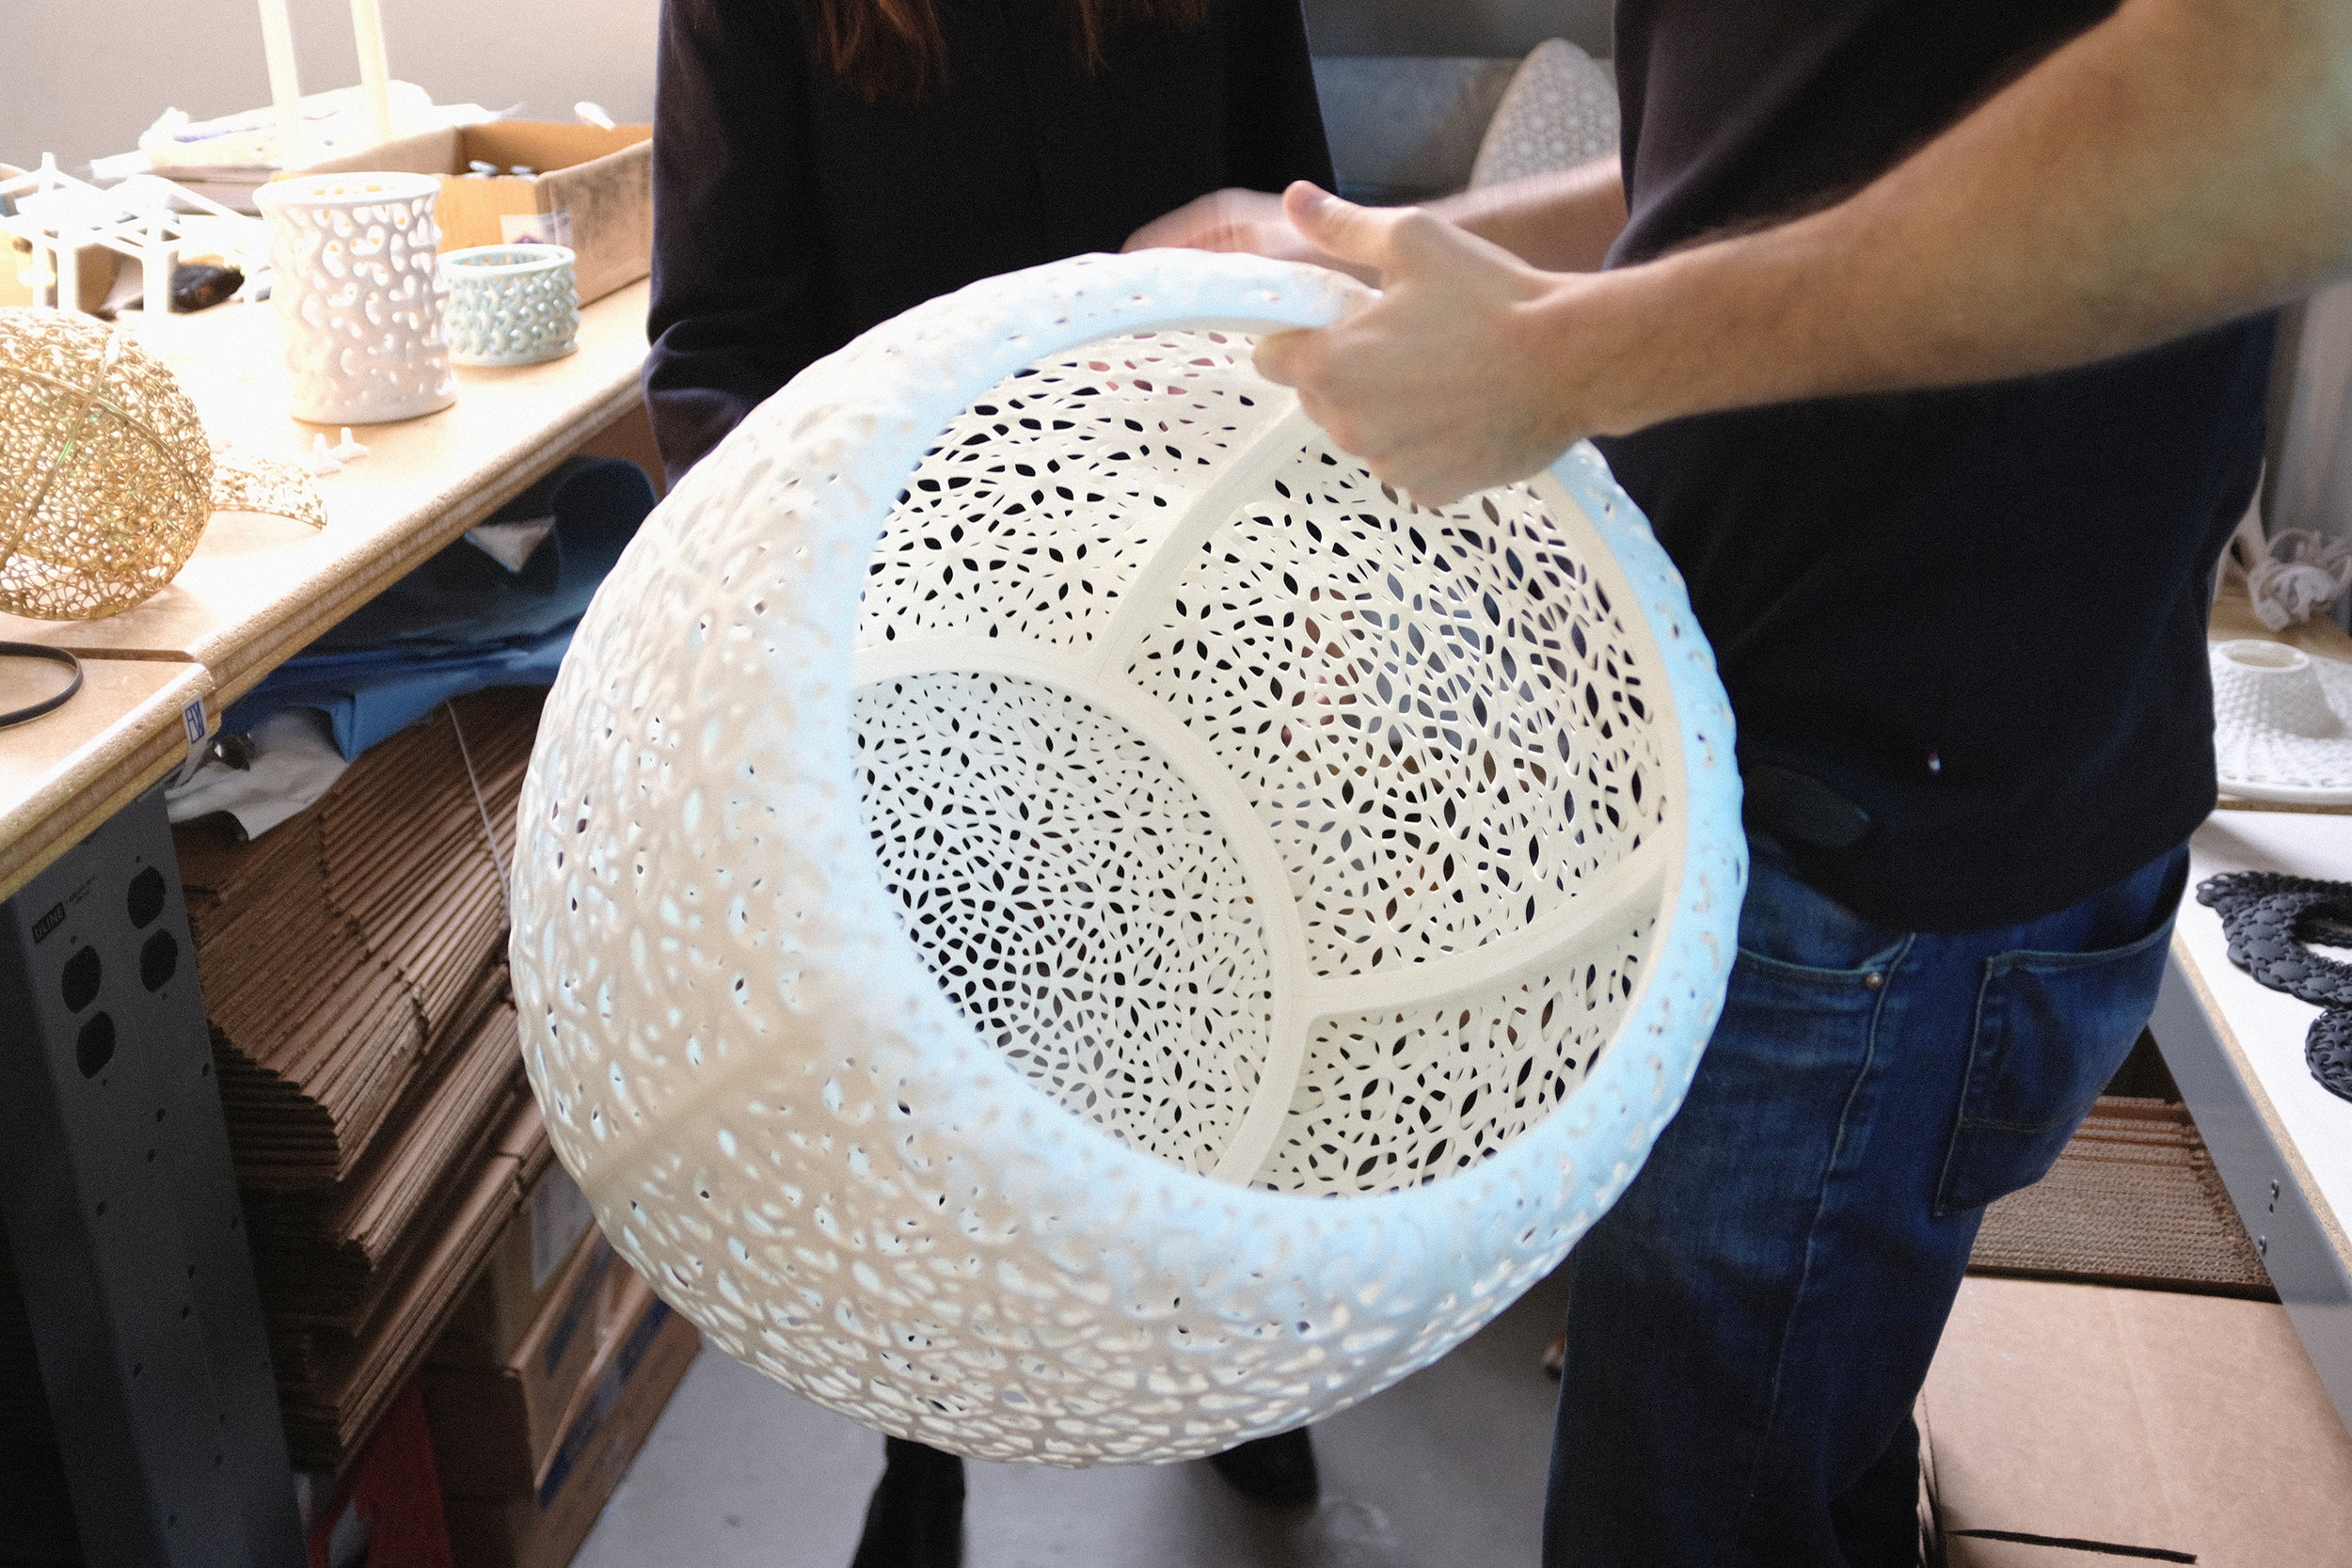 Each seat is made of 7 different 3D printed segments that get bolted together